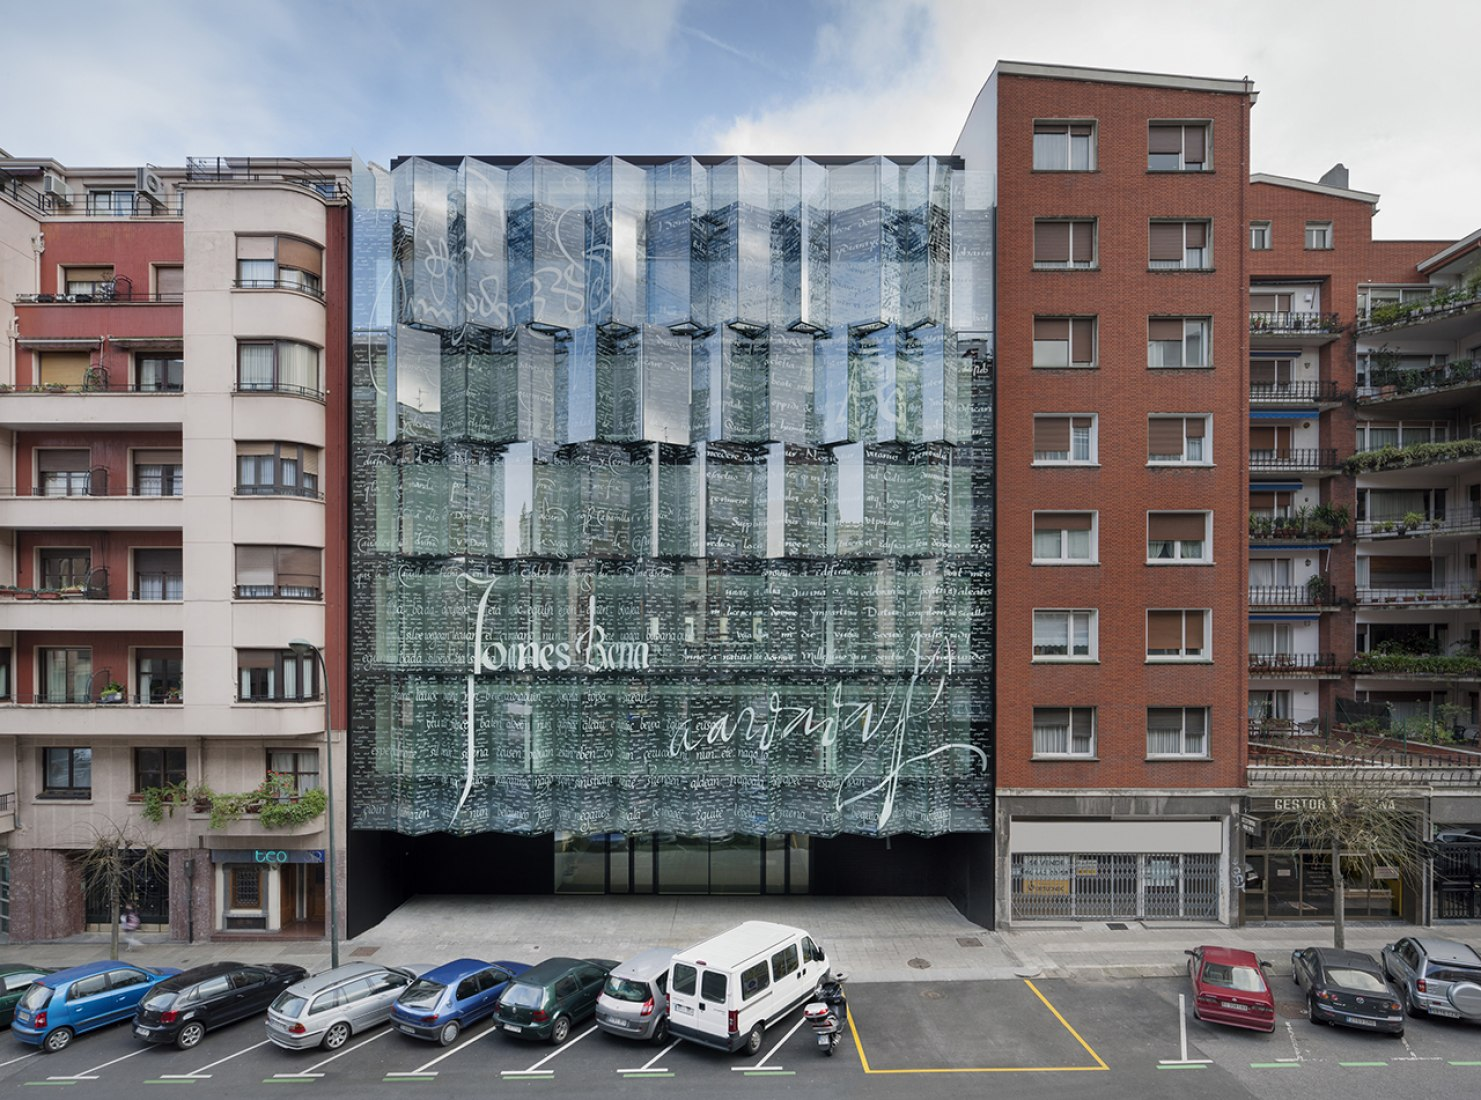 Historical Archive of the Basque Country by Gonzalo Carro, ACXT Arquitectos. Photography © Aitor Ortiz. Courtesy of ACXT